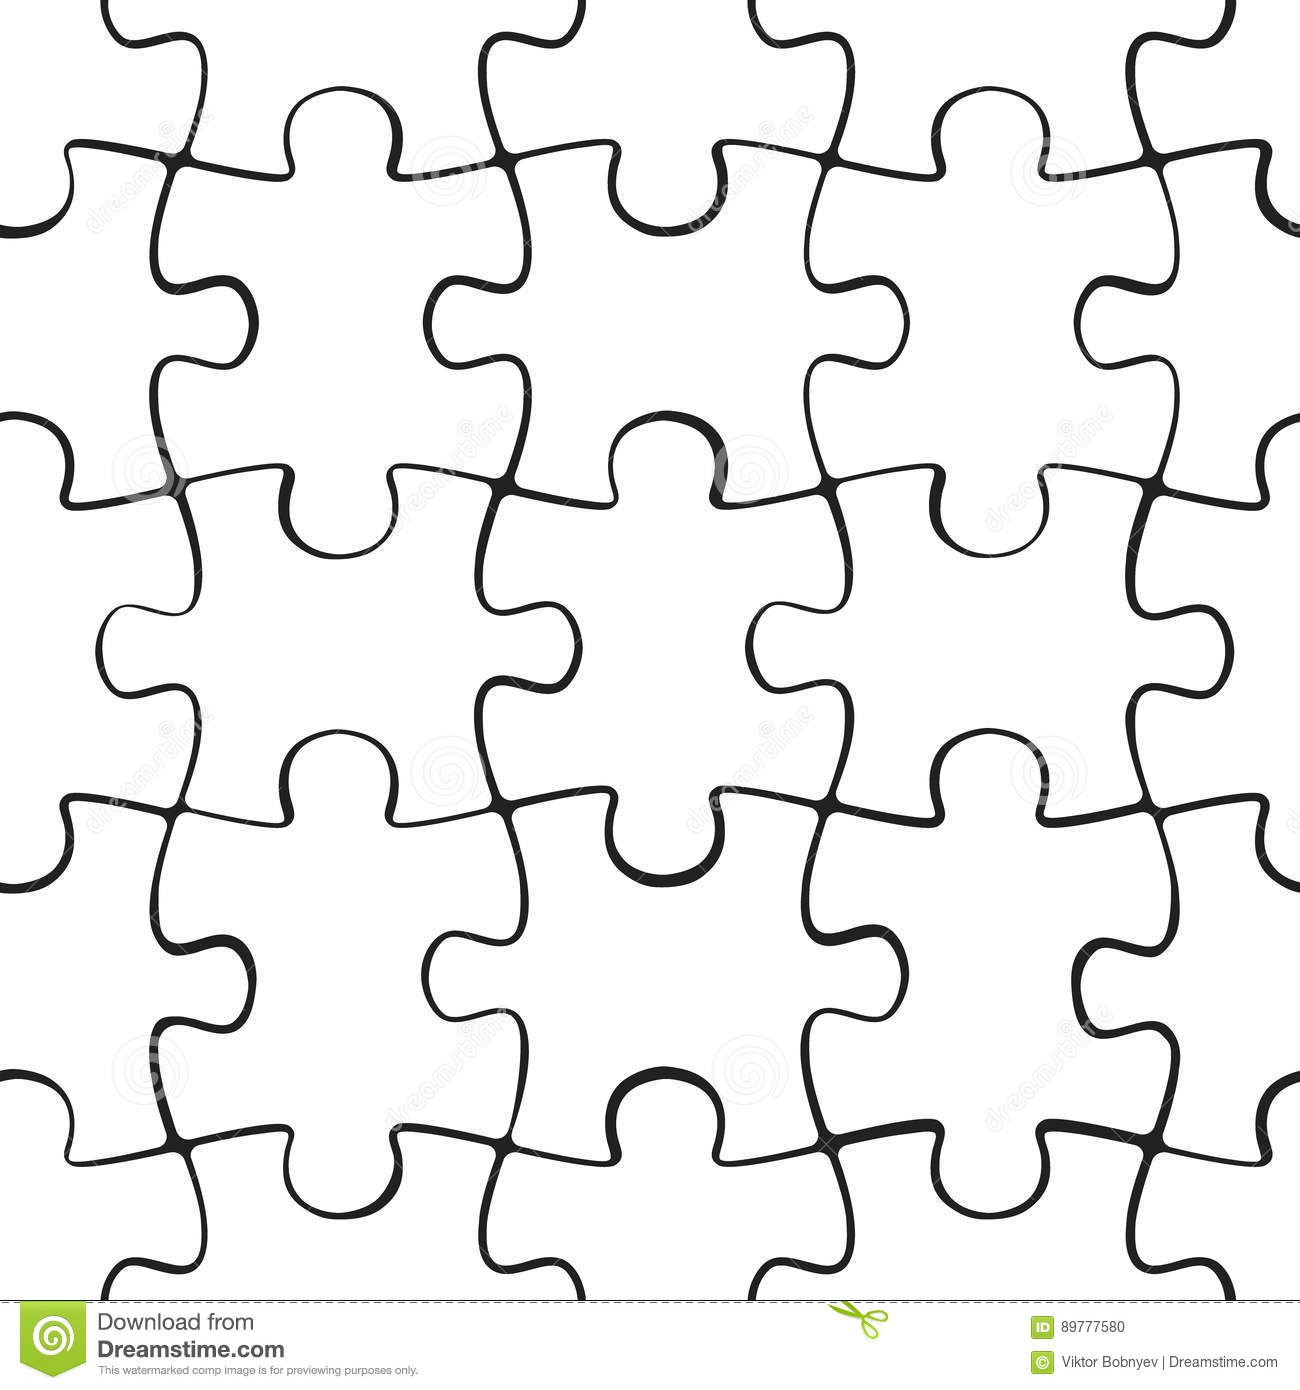 Puzzle Jigsaw Seamless Pattern Stock Vector Illustration Of Puzzle